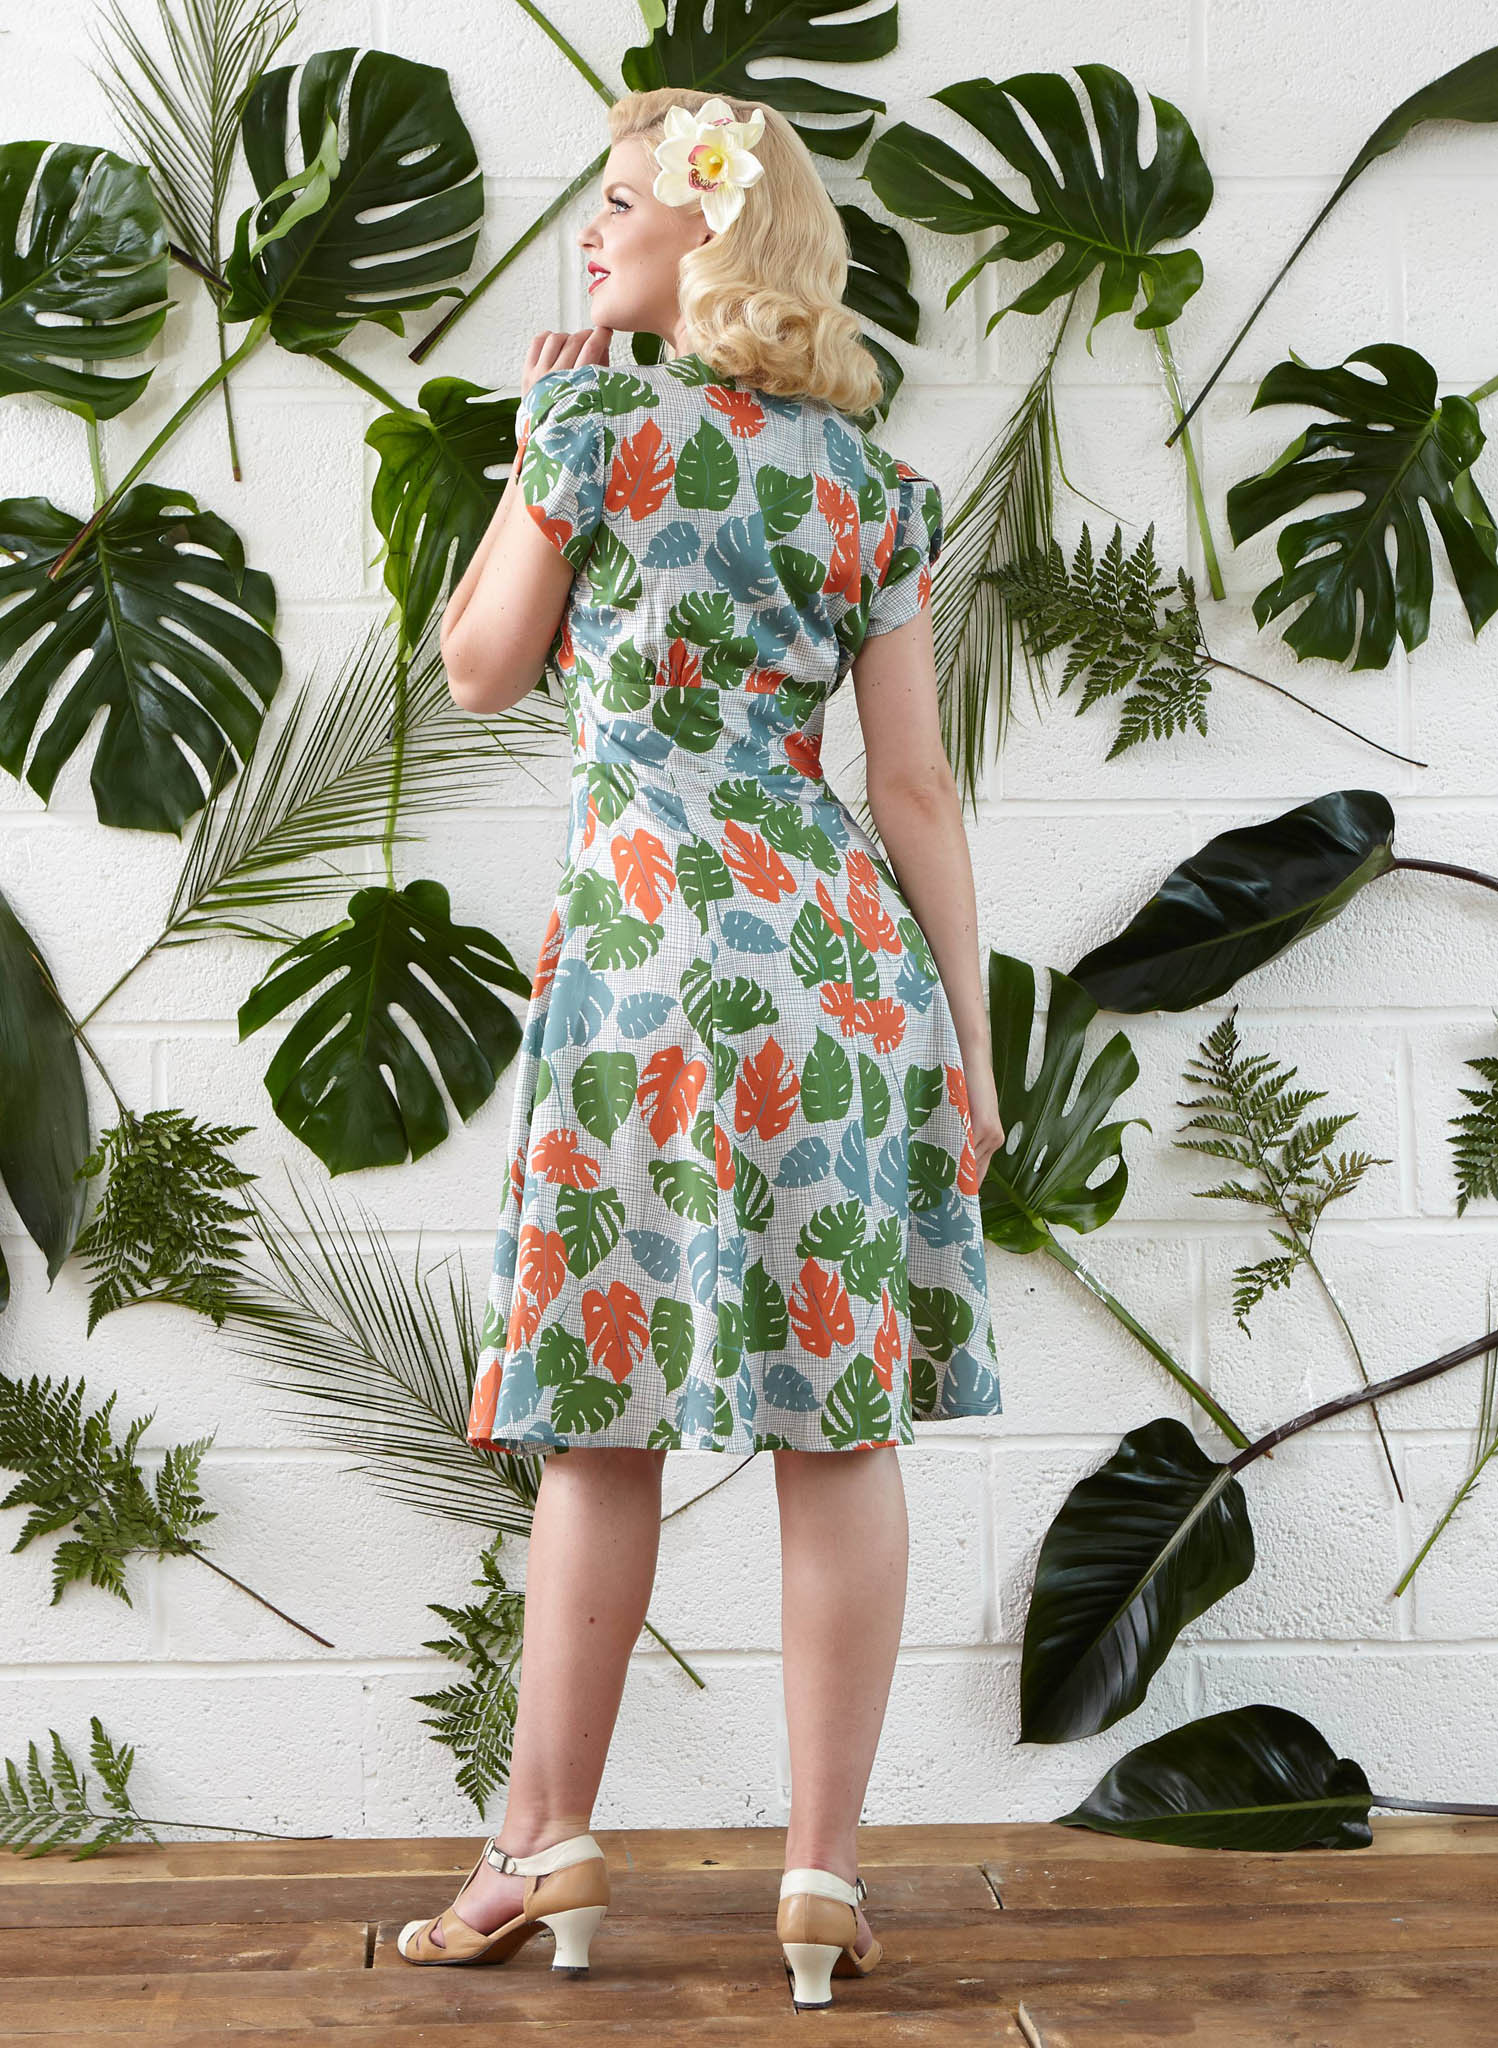 Rita - Green Tropical Leaf Print Vintage-style 1950s Dress for Women